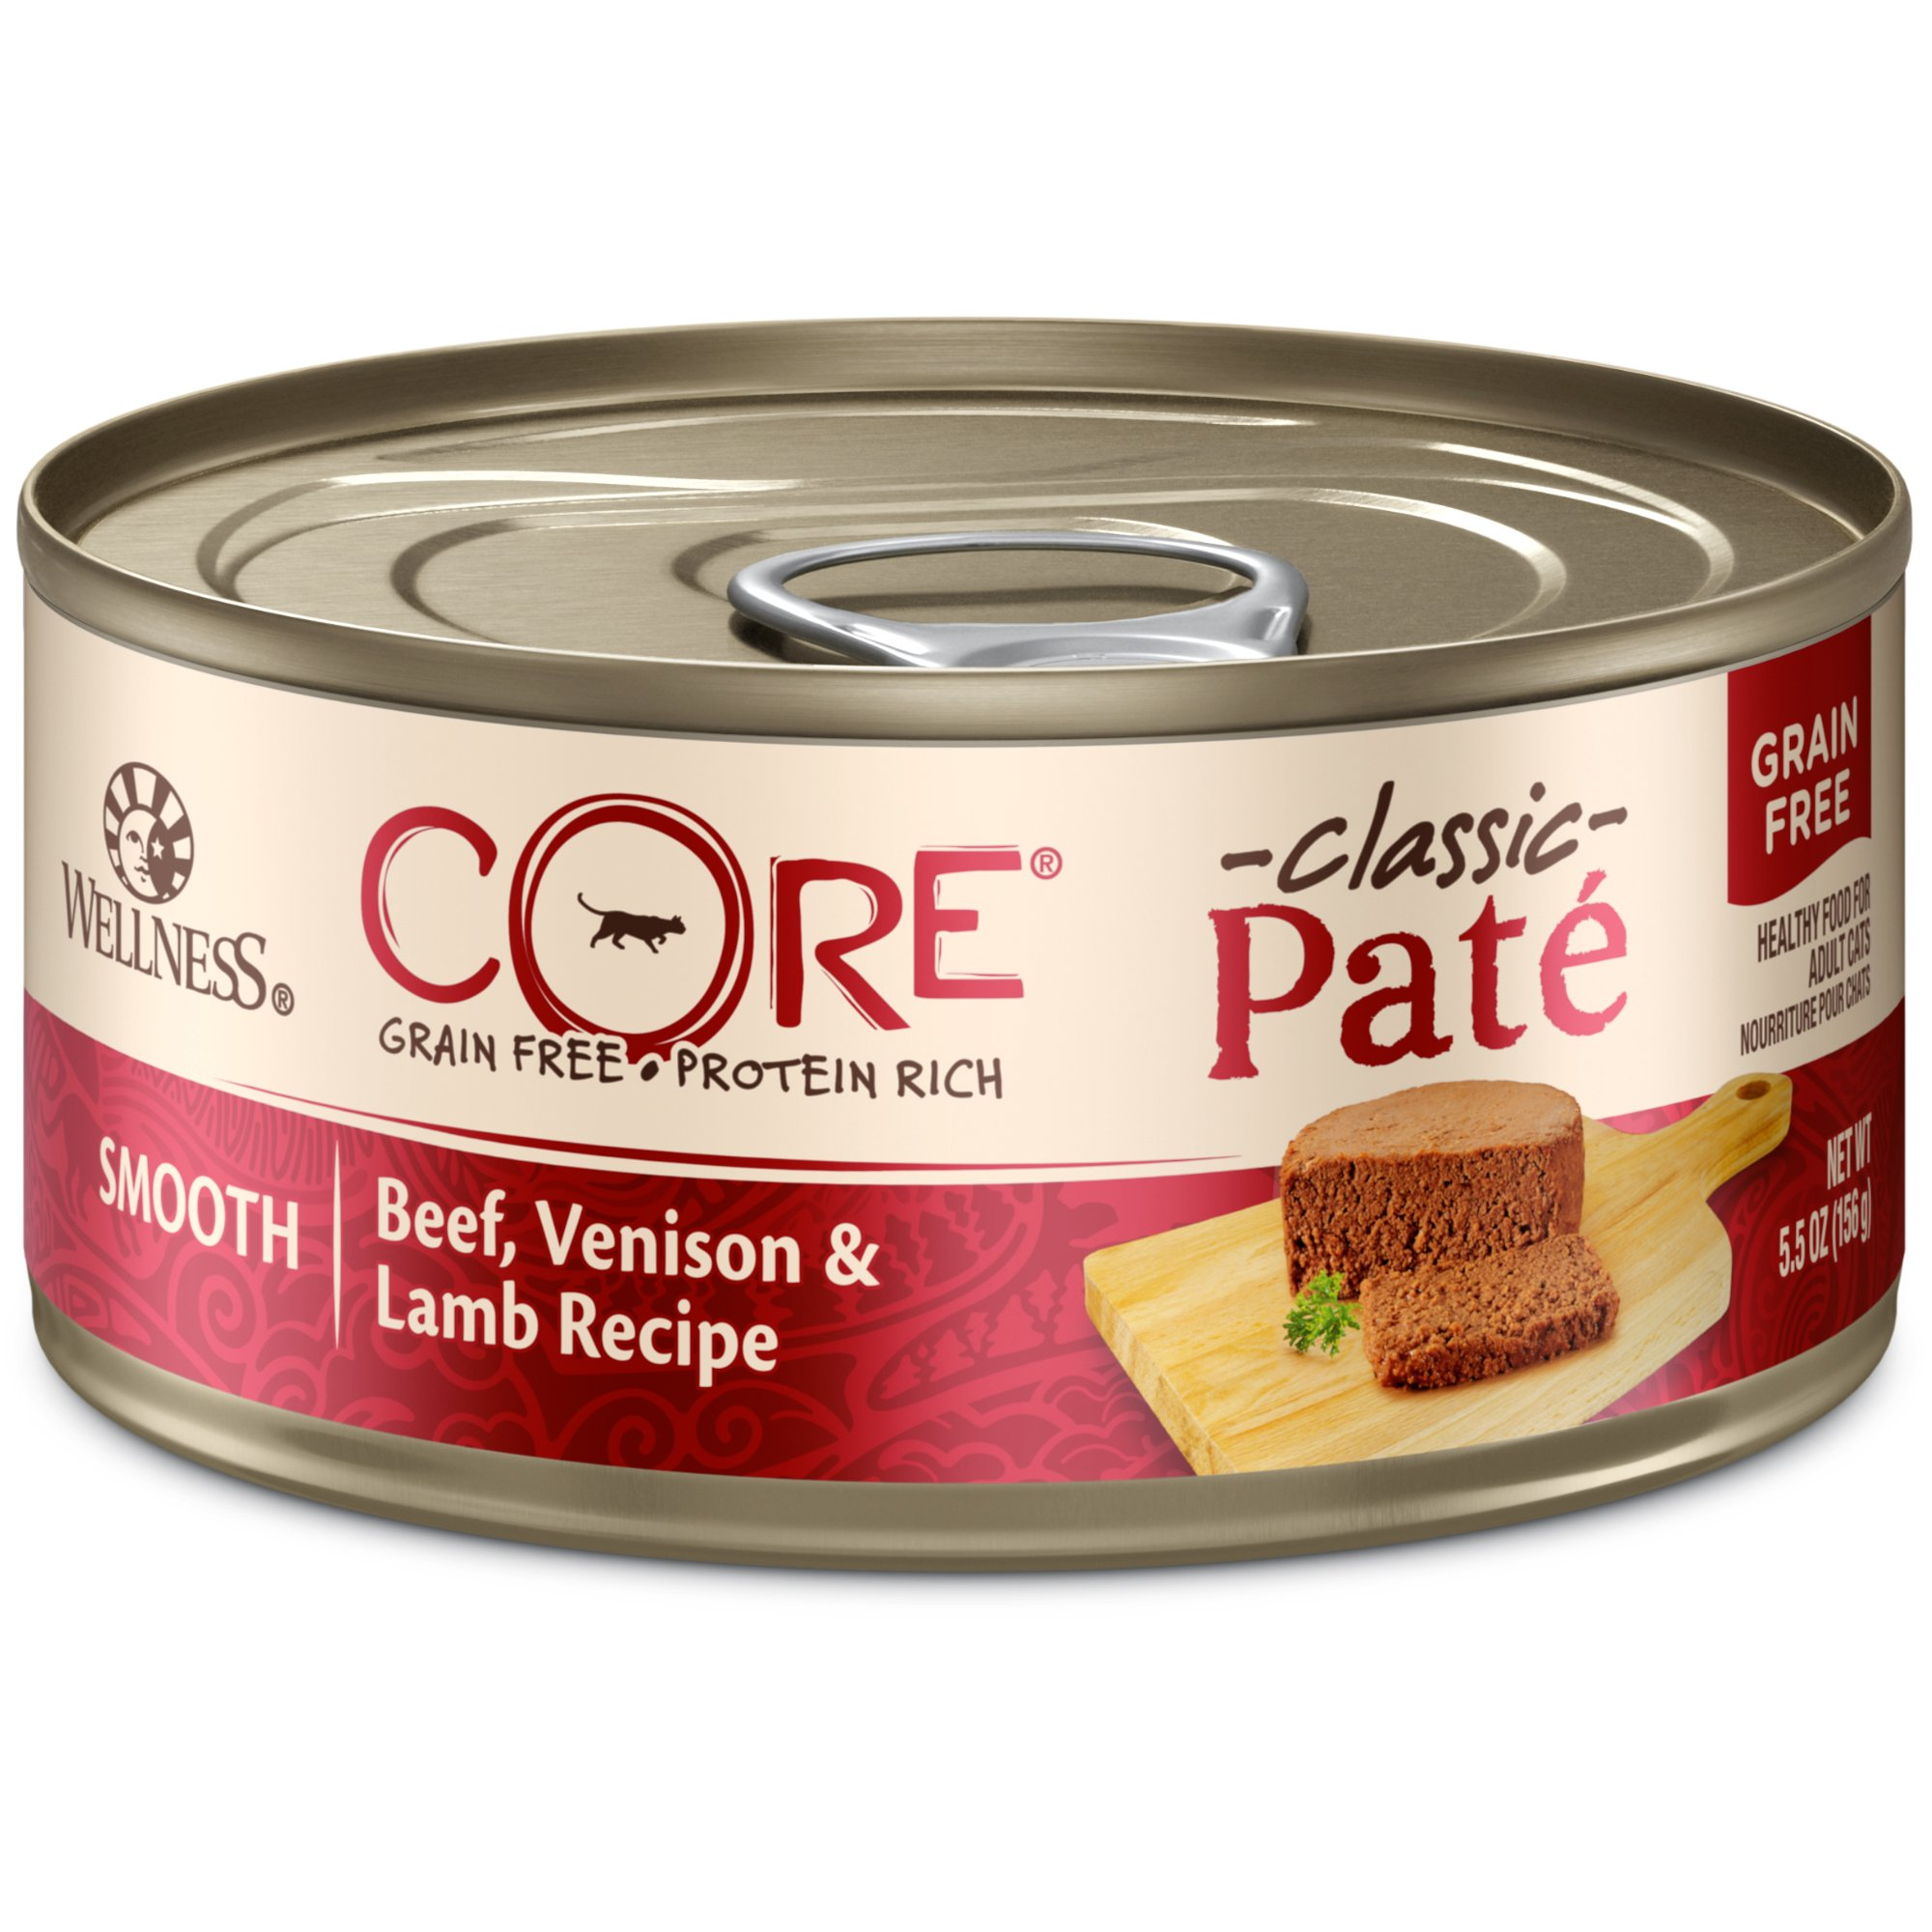 Wellness Core Natural Grain Free Wet Canned Cat Food, Beef, Venison & Lamb, 5.5-Ounce Can (Pack Of 24) by WELLNESS CORE